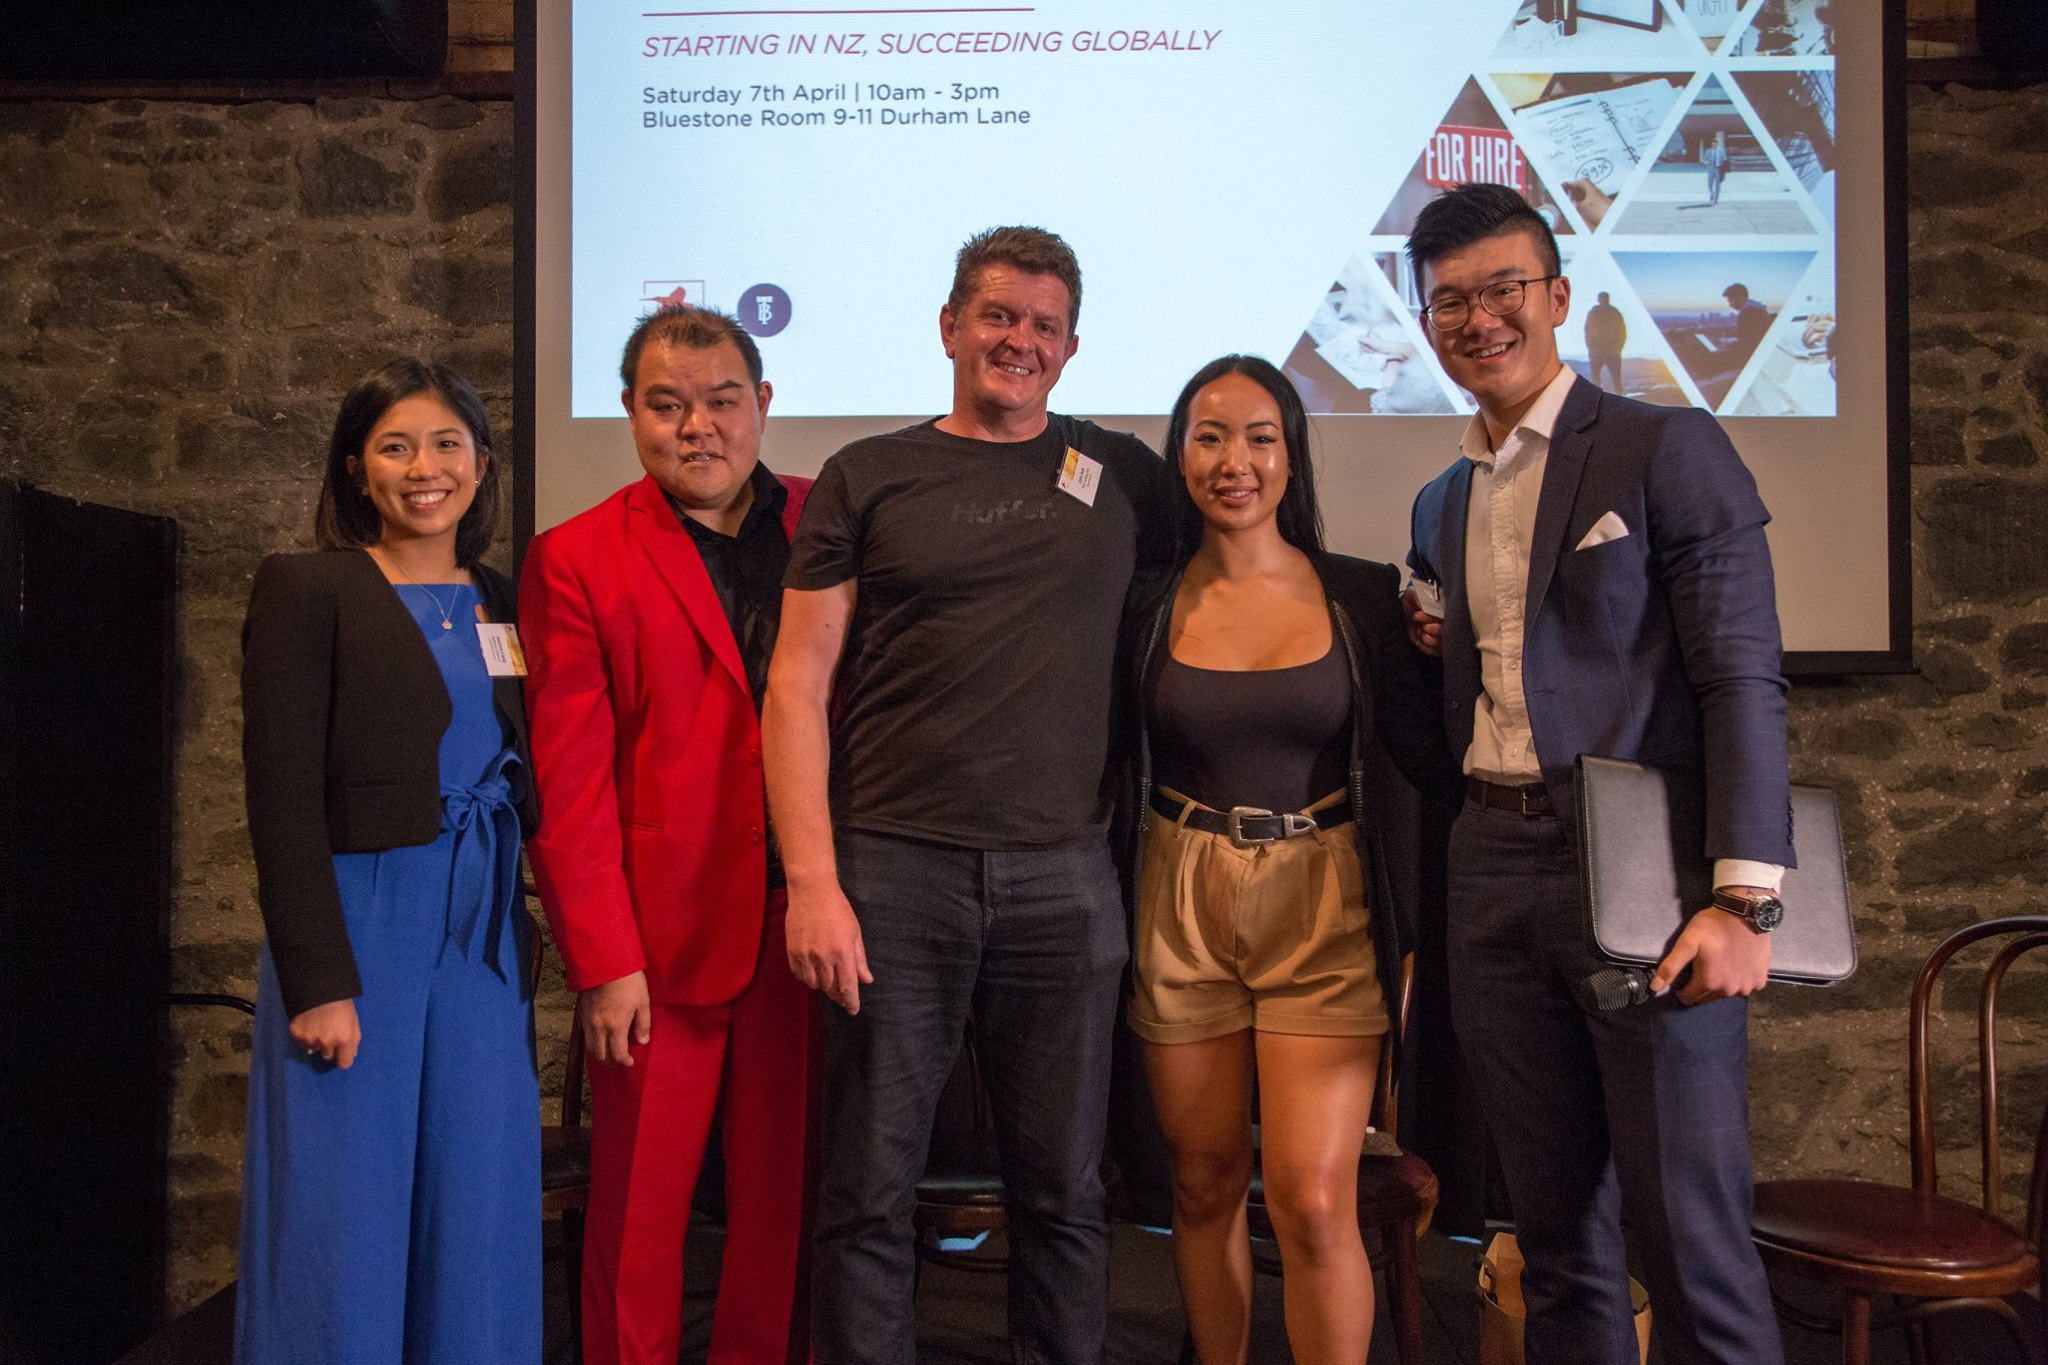 Engaging asian communities in new zealand